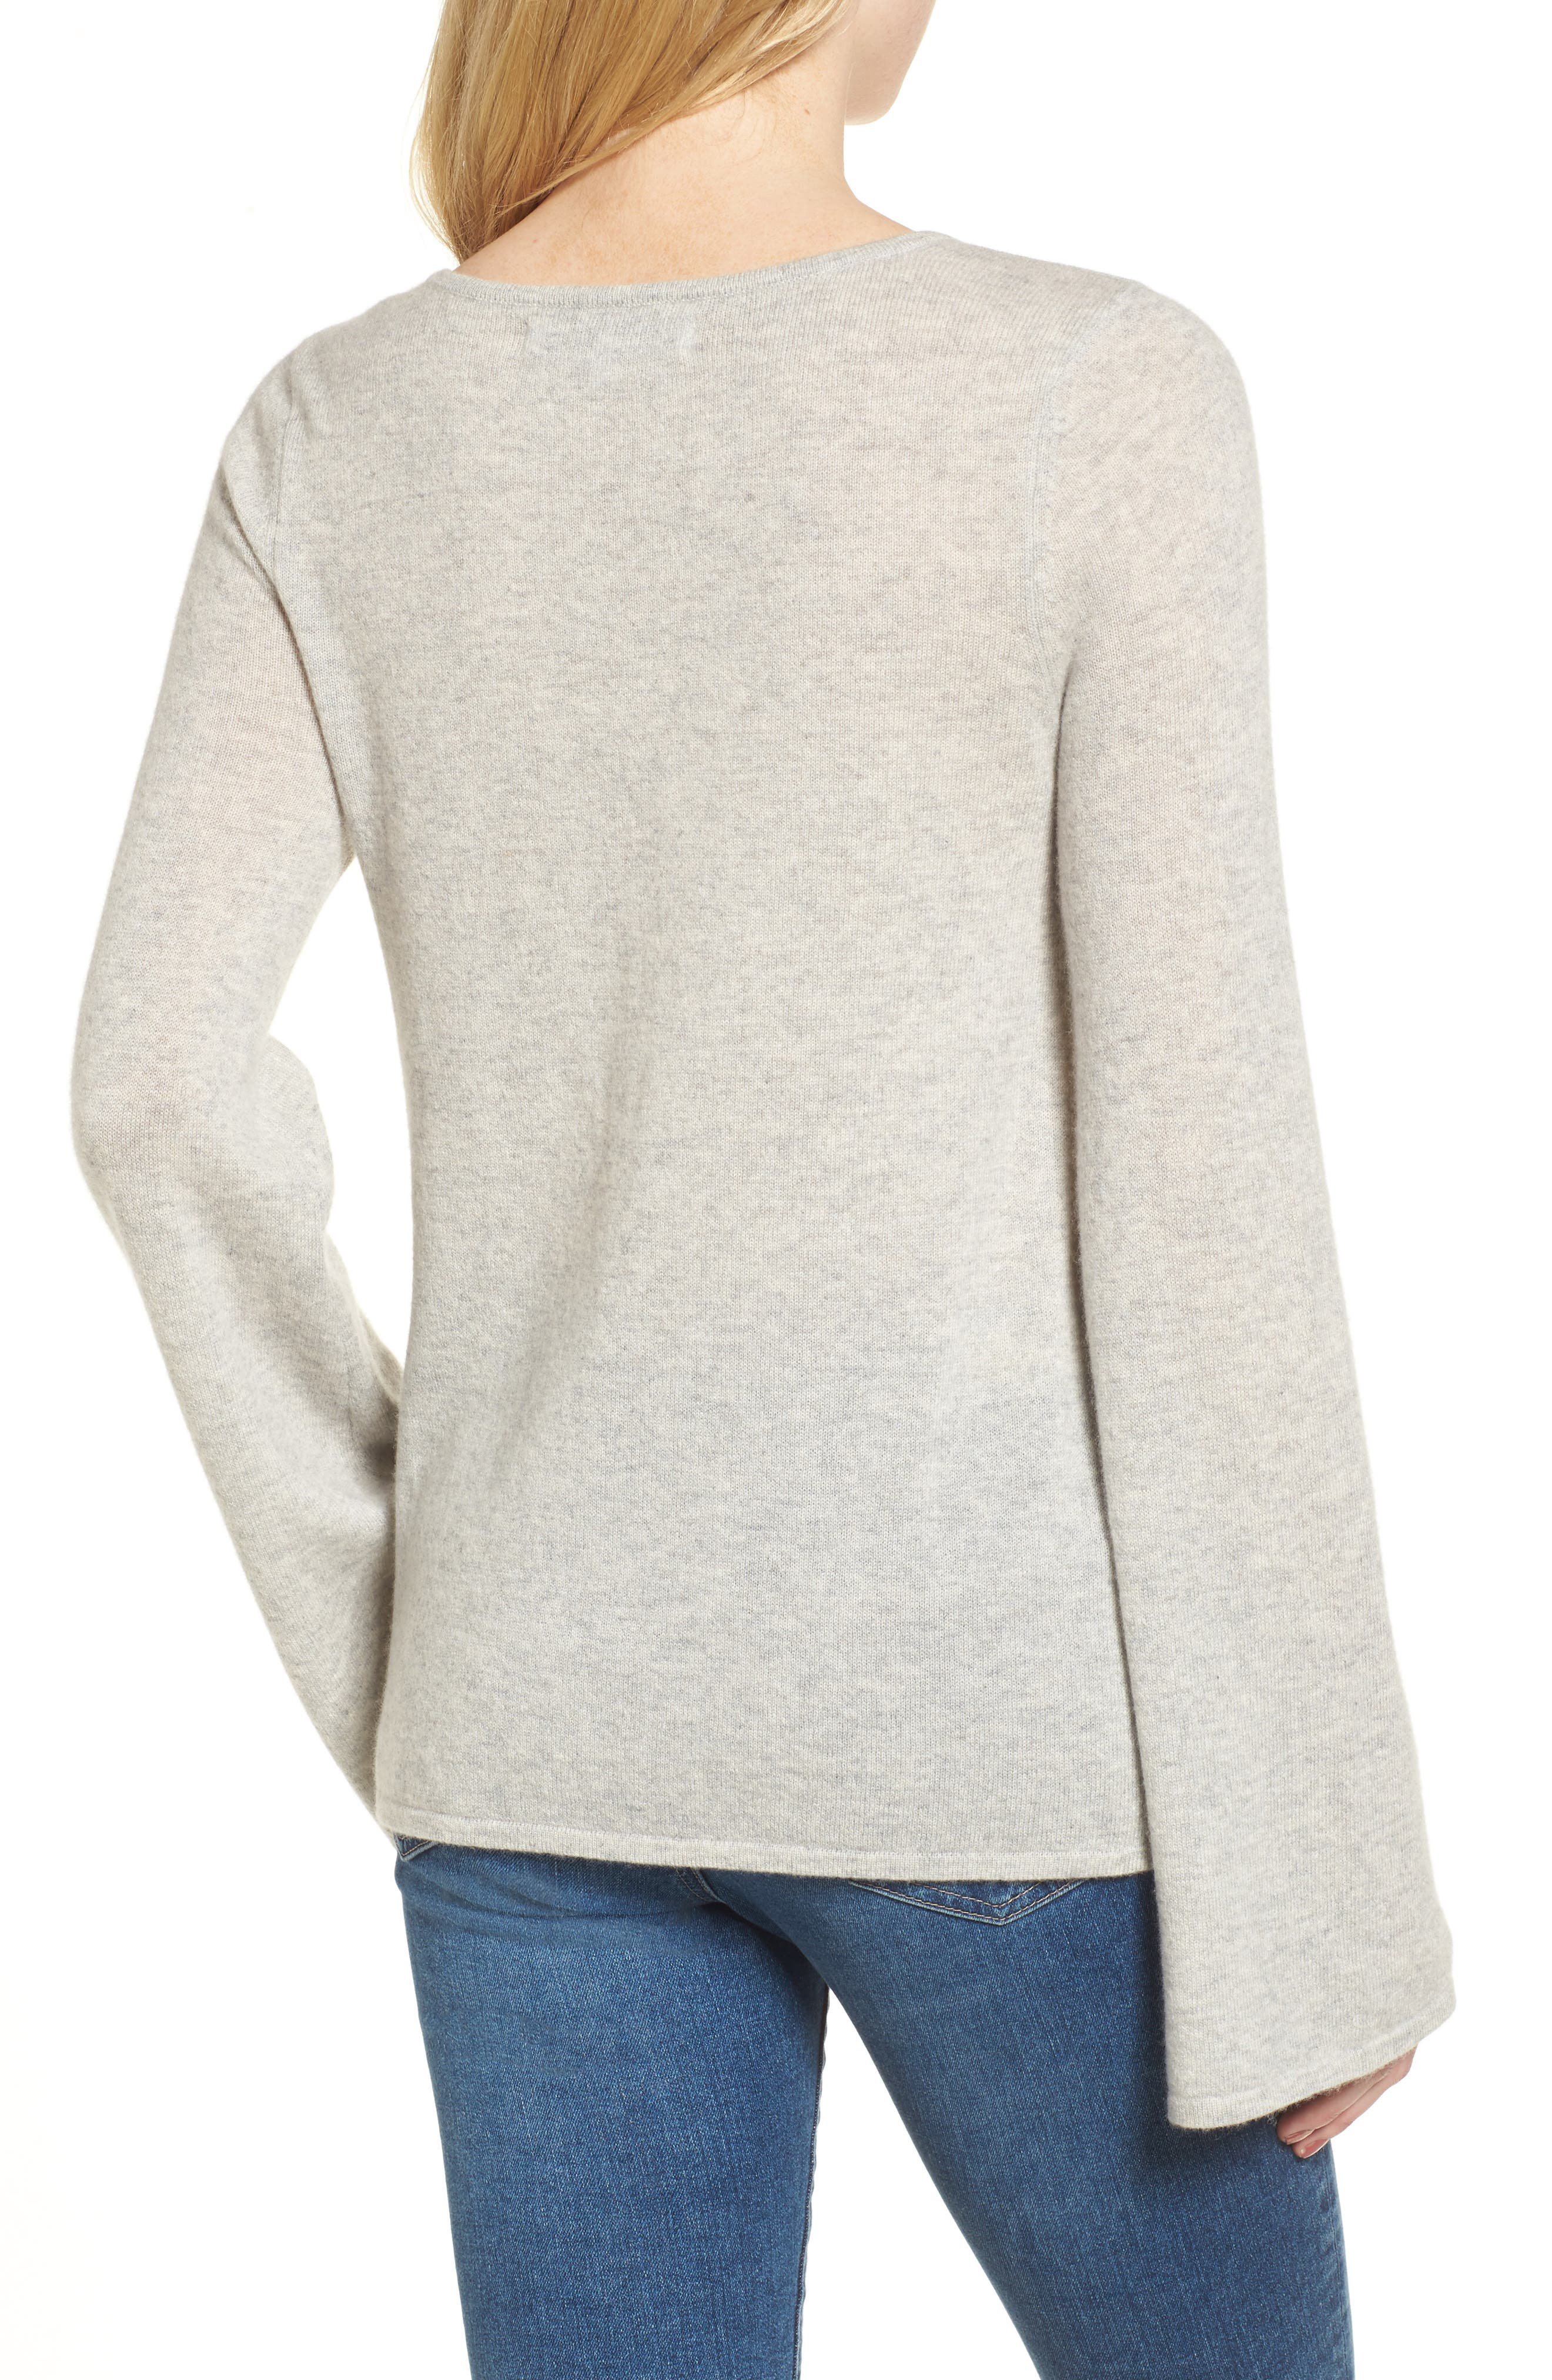 Marylee Cashmere Top,                             Alternate thumbnail 2, color,                             Light Heather Grey